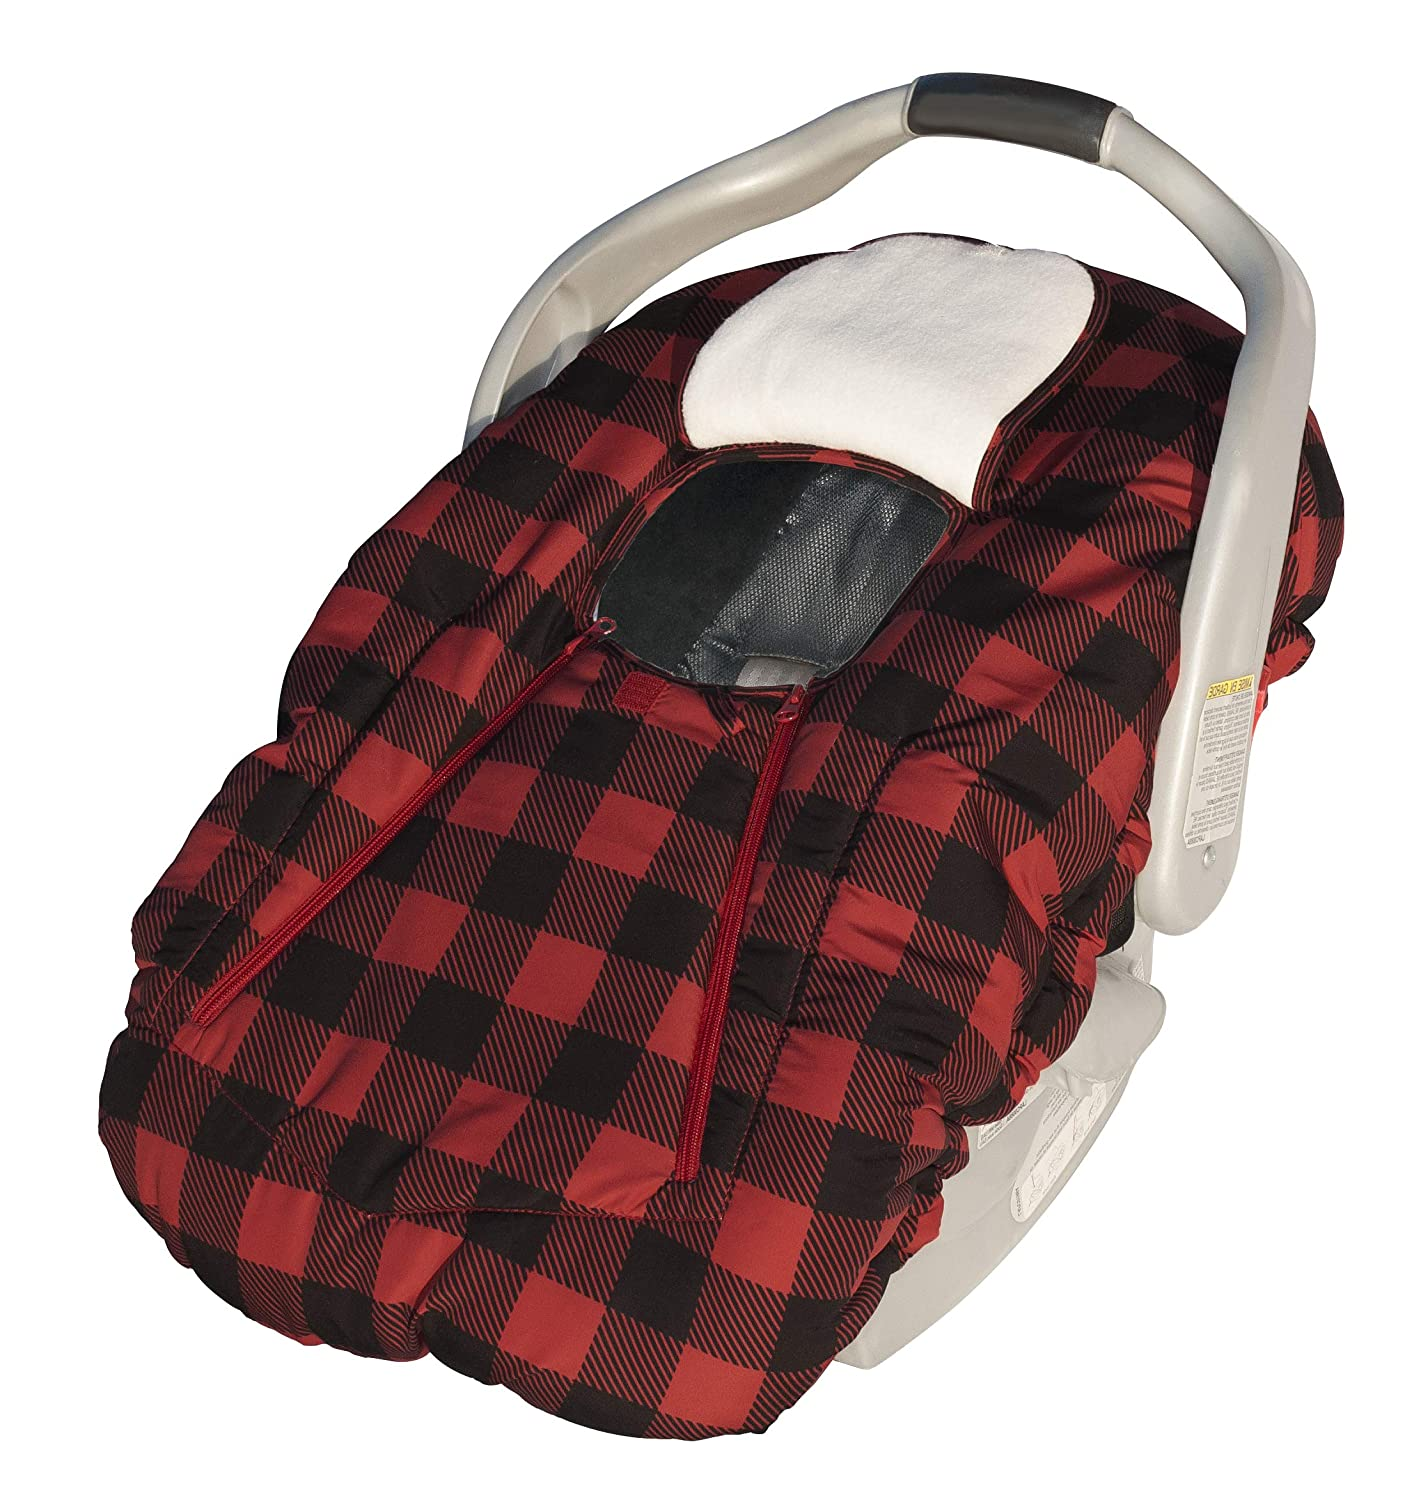 Jolly Jumper Deluxe Sneak-A-Peak, Red Plaid 433-05